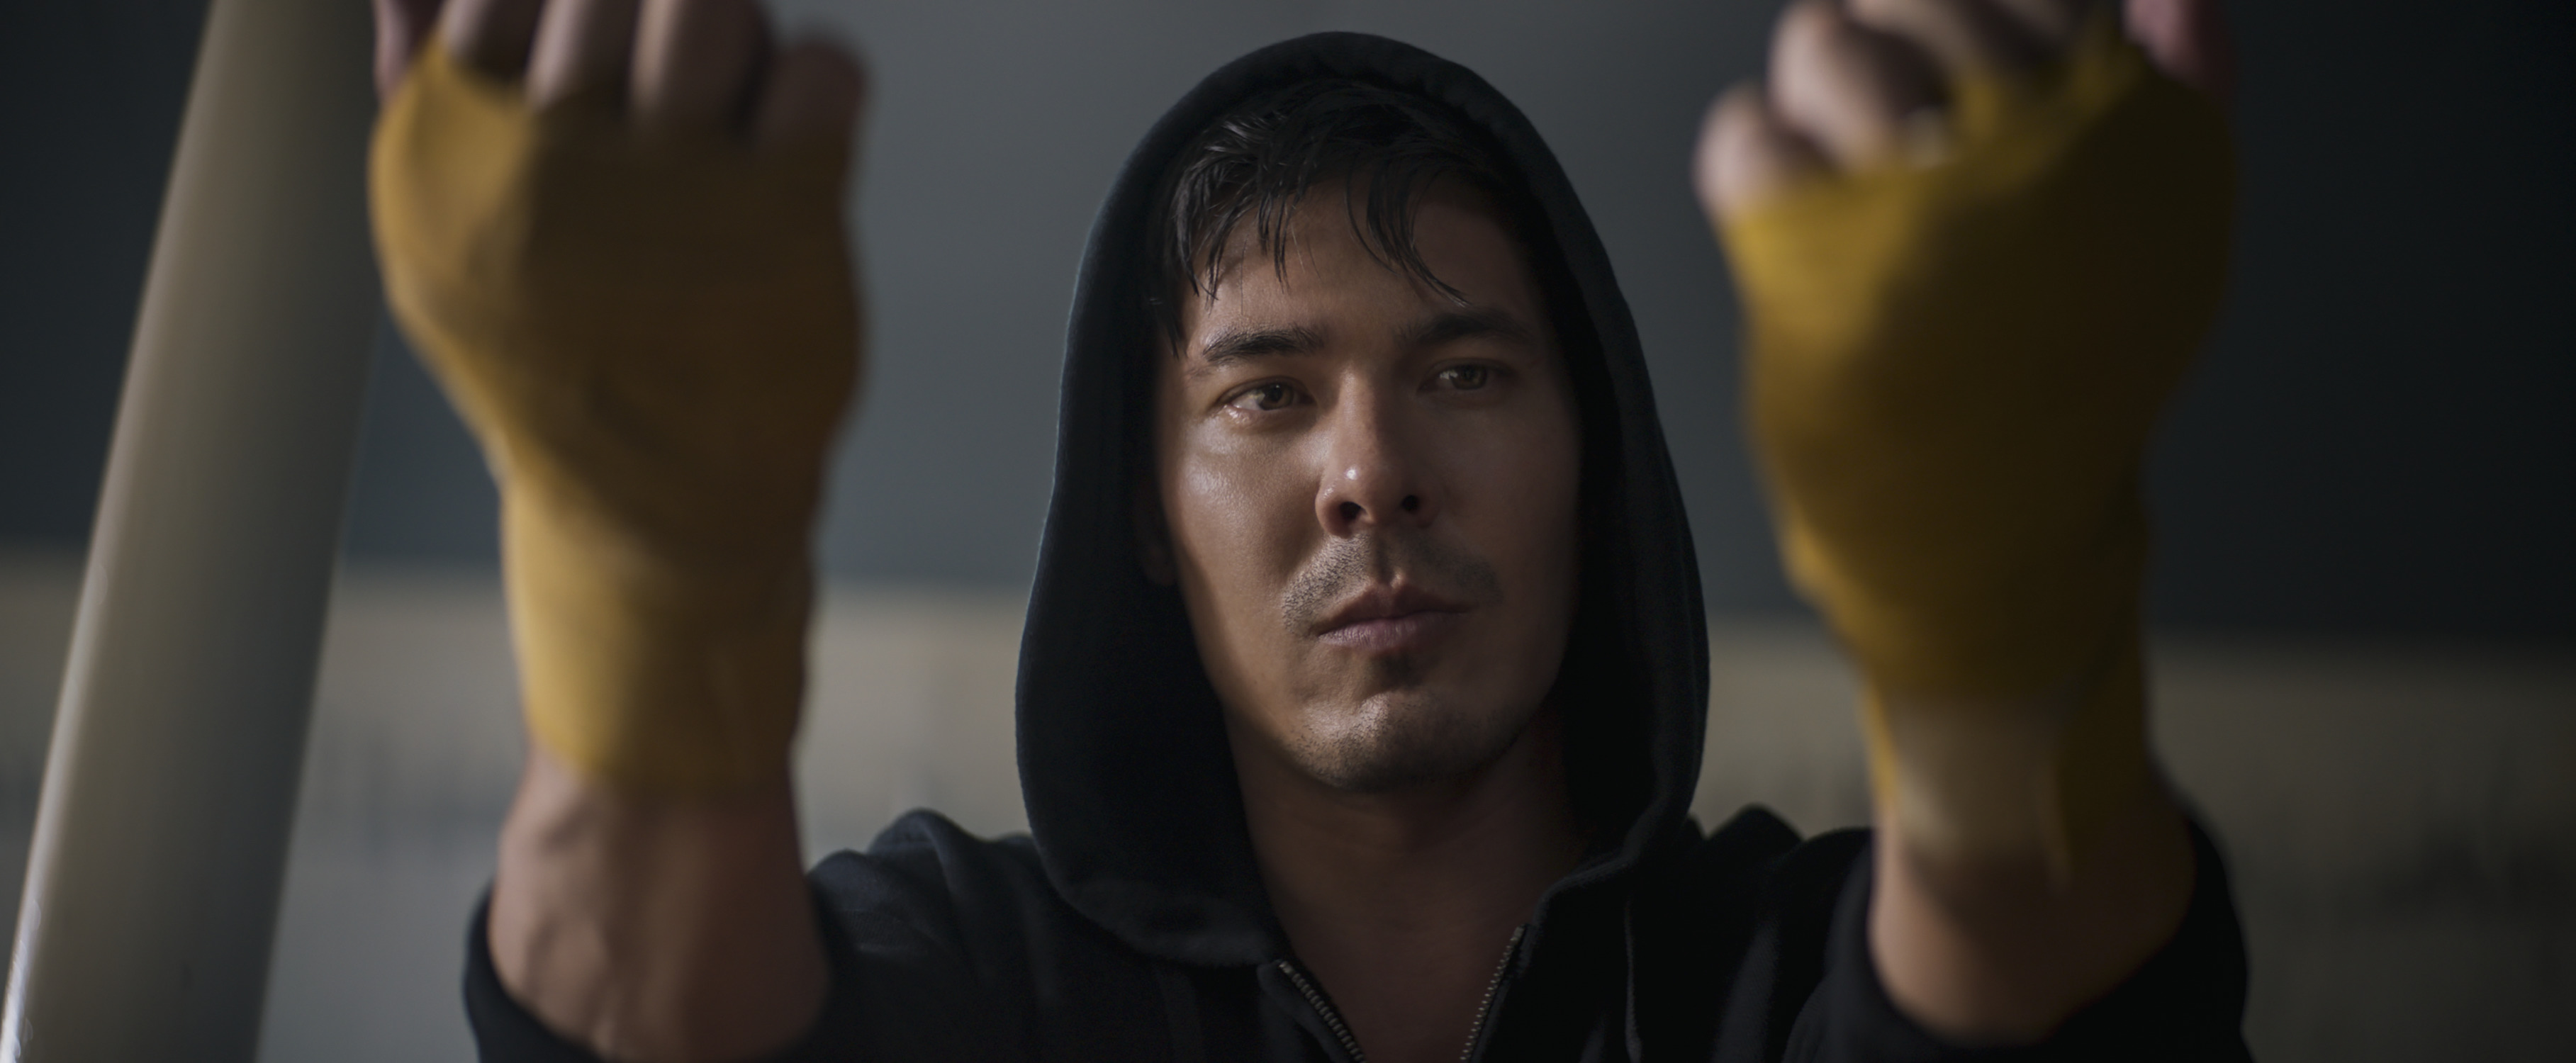 Lewis Tan as Cole Young holds up his wrapped fists in Mortal Kombat